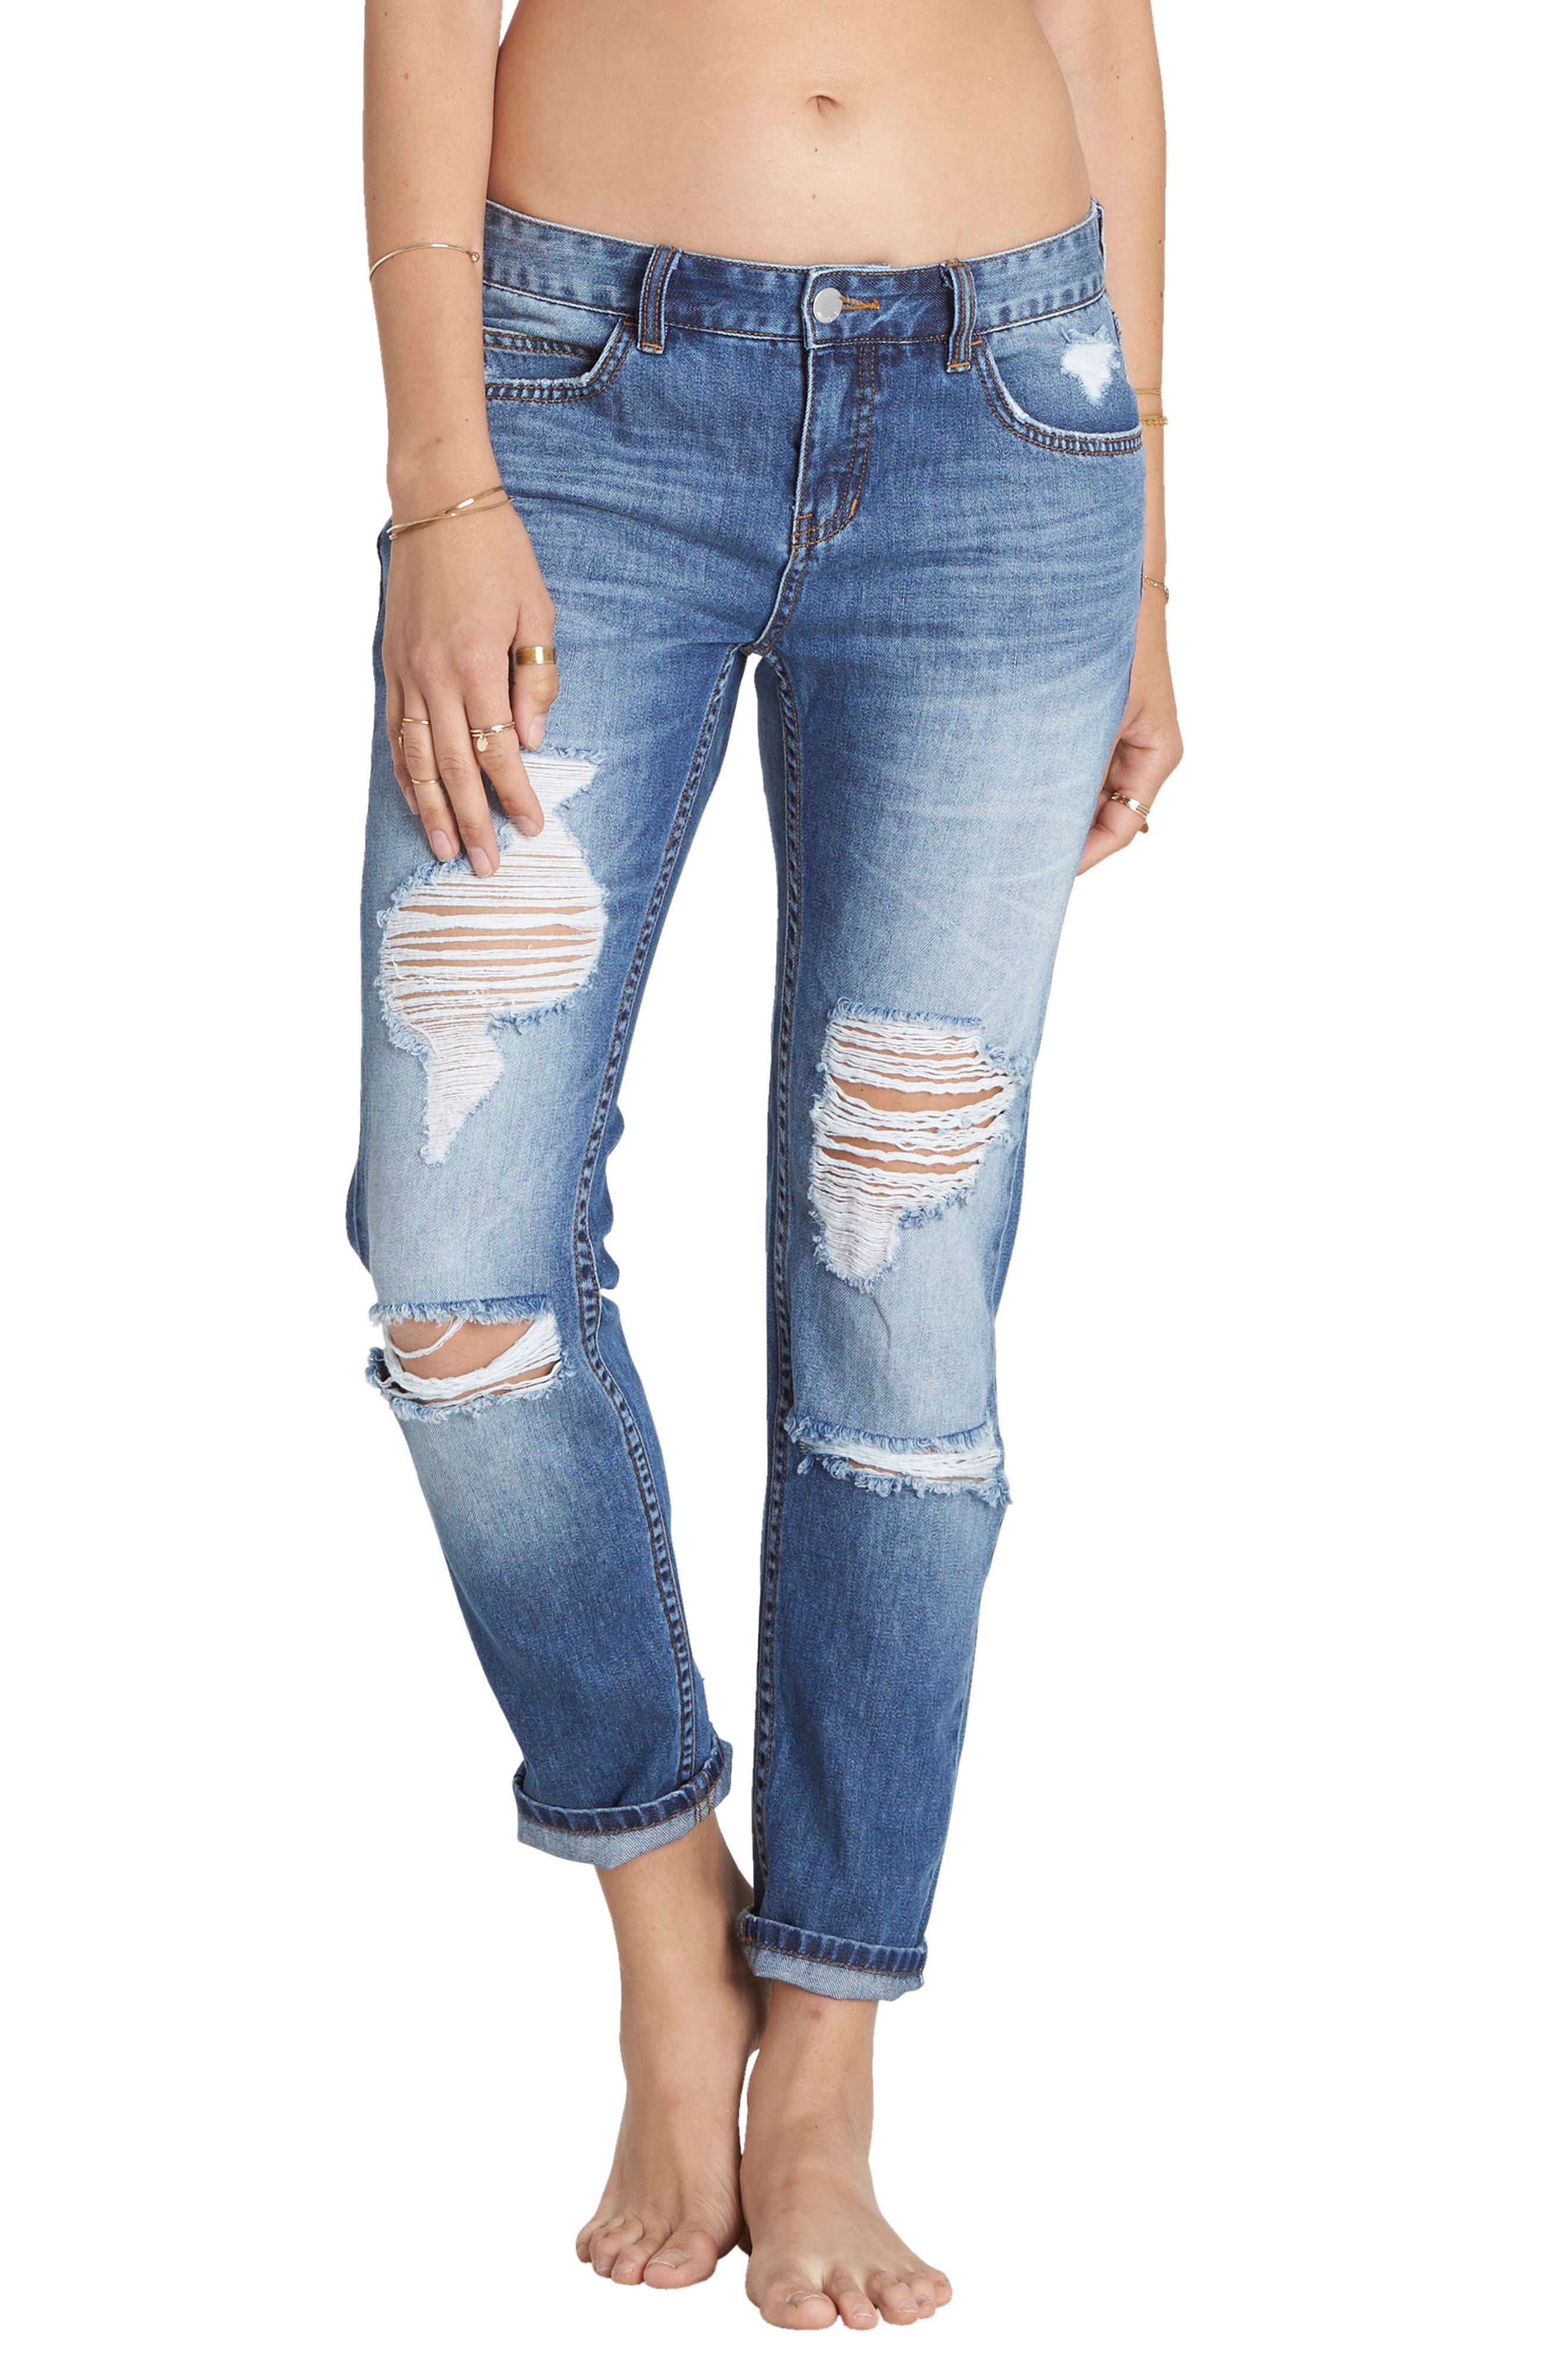 BIllabong Hey Boy Ripped Girlfriend Jeans (Pacific)